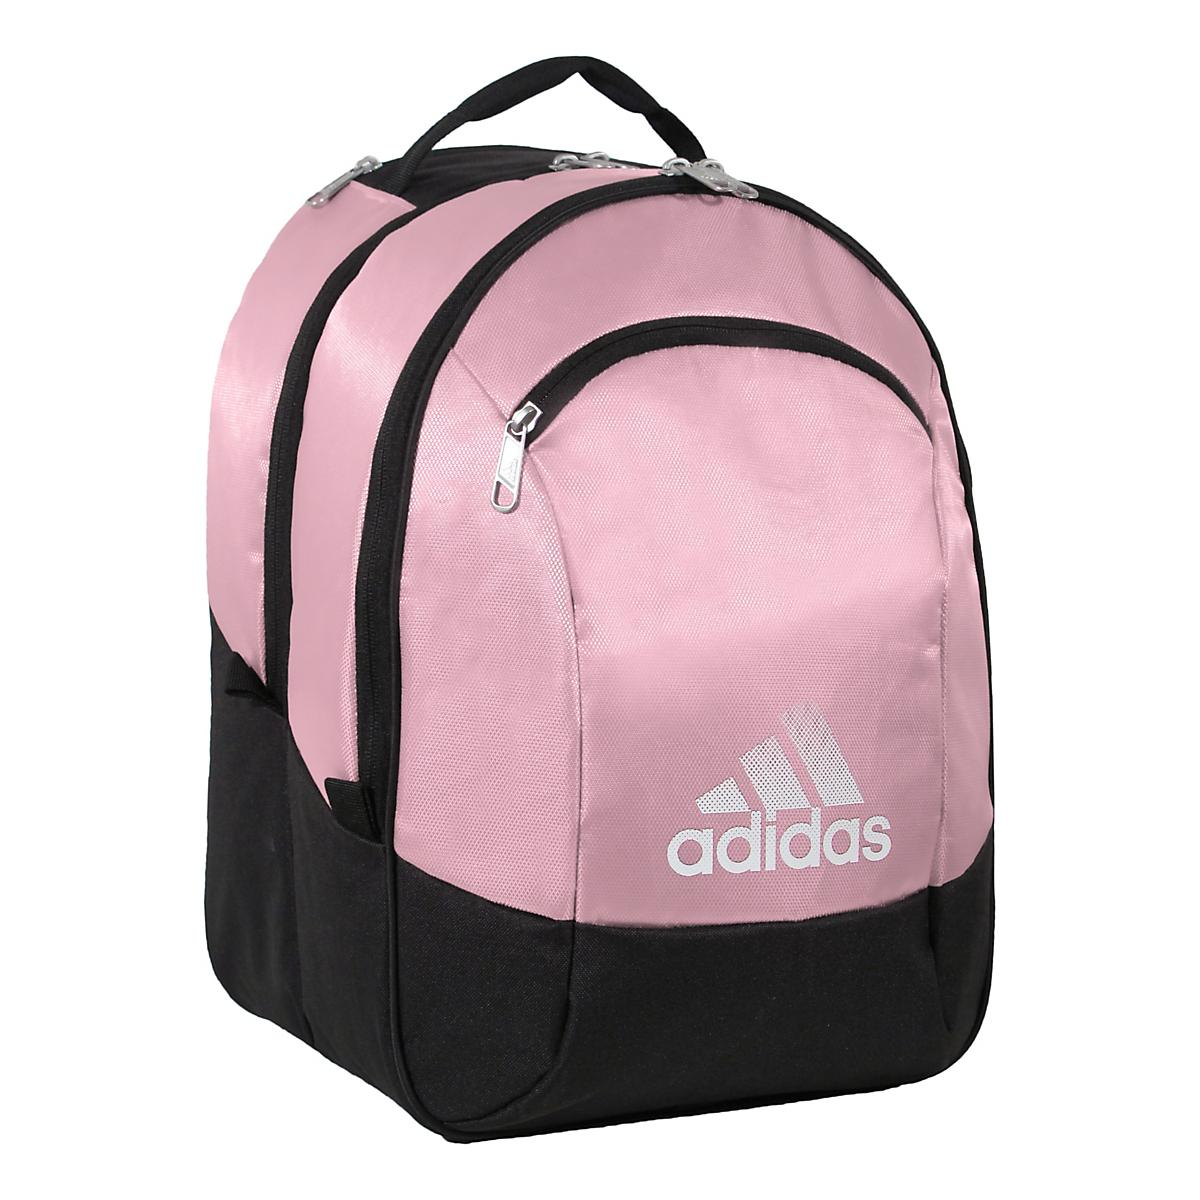 c4b030e3c5ba adidas Striker Team Backpack Bags at Road Runner Sports